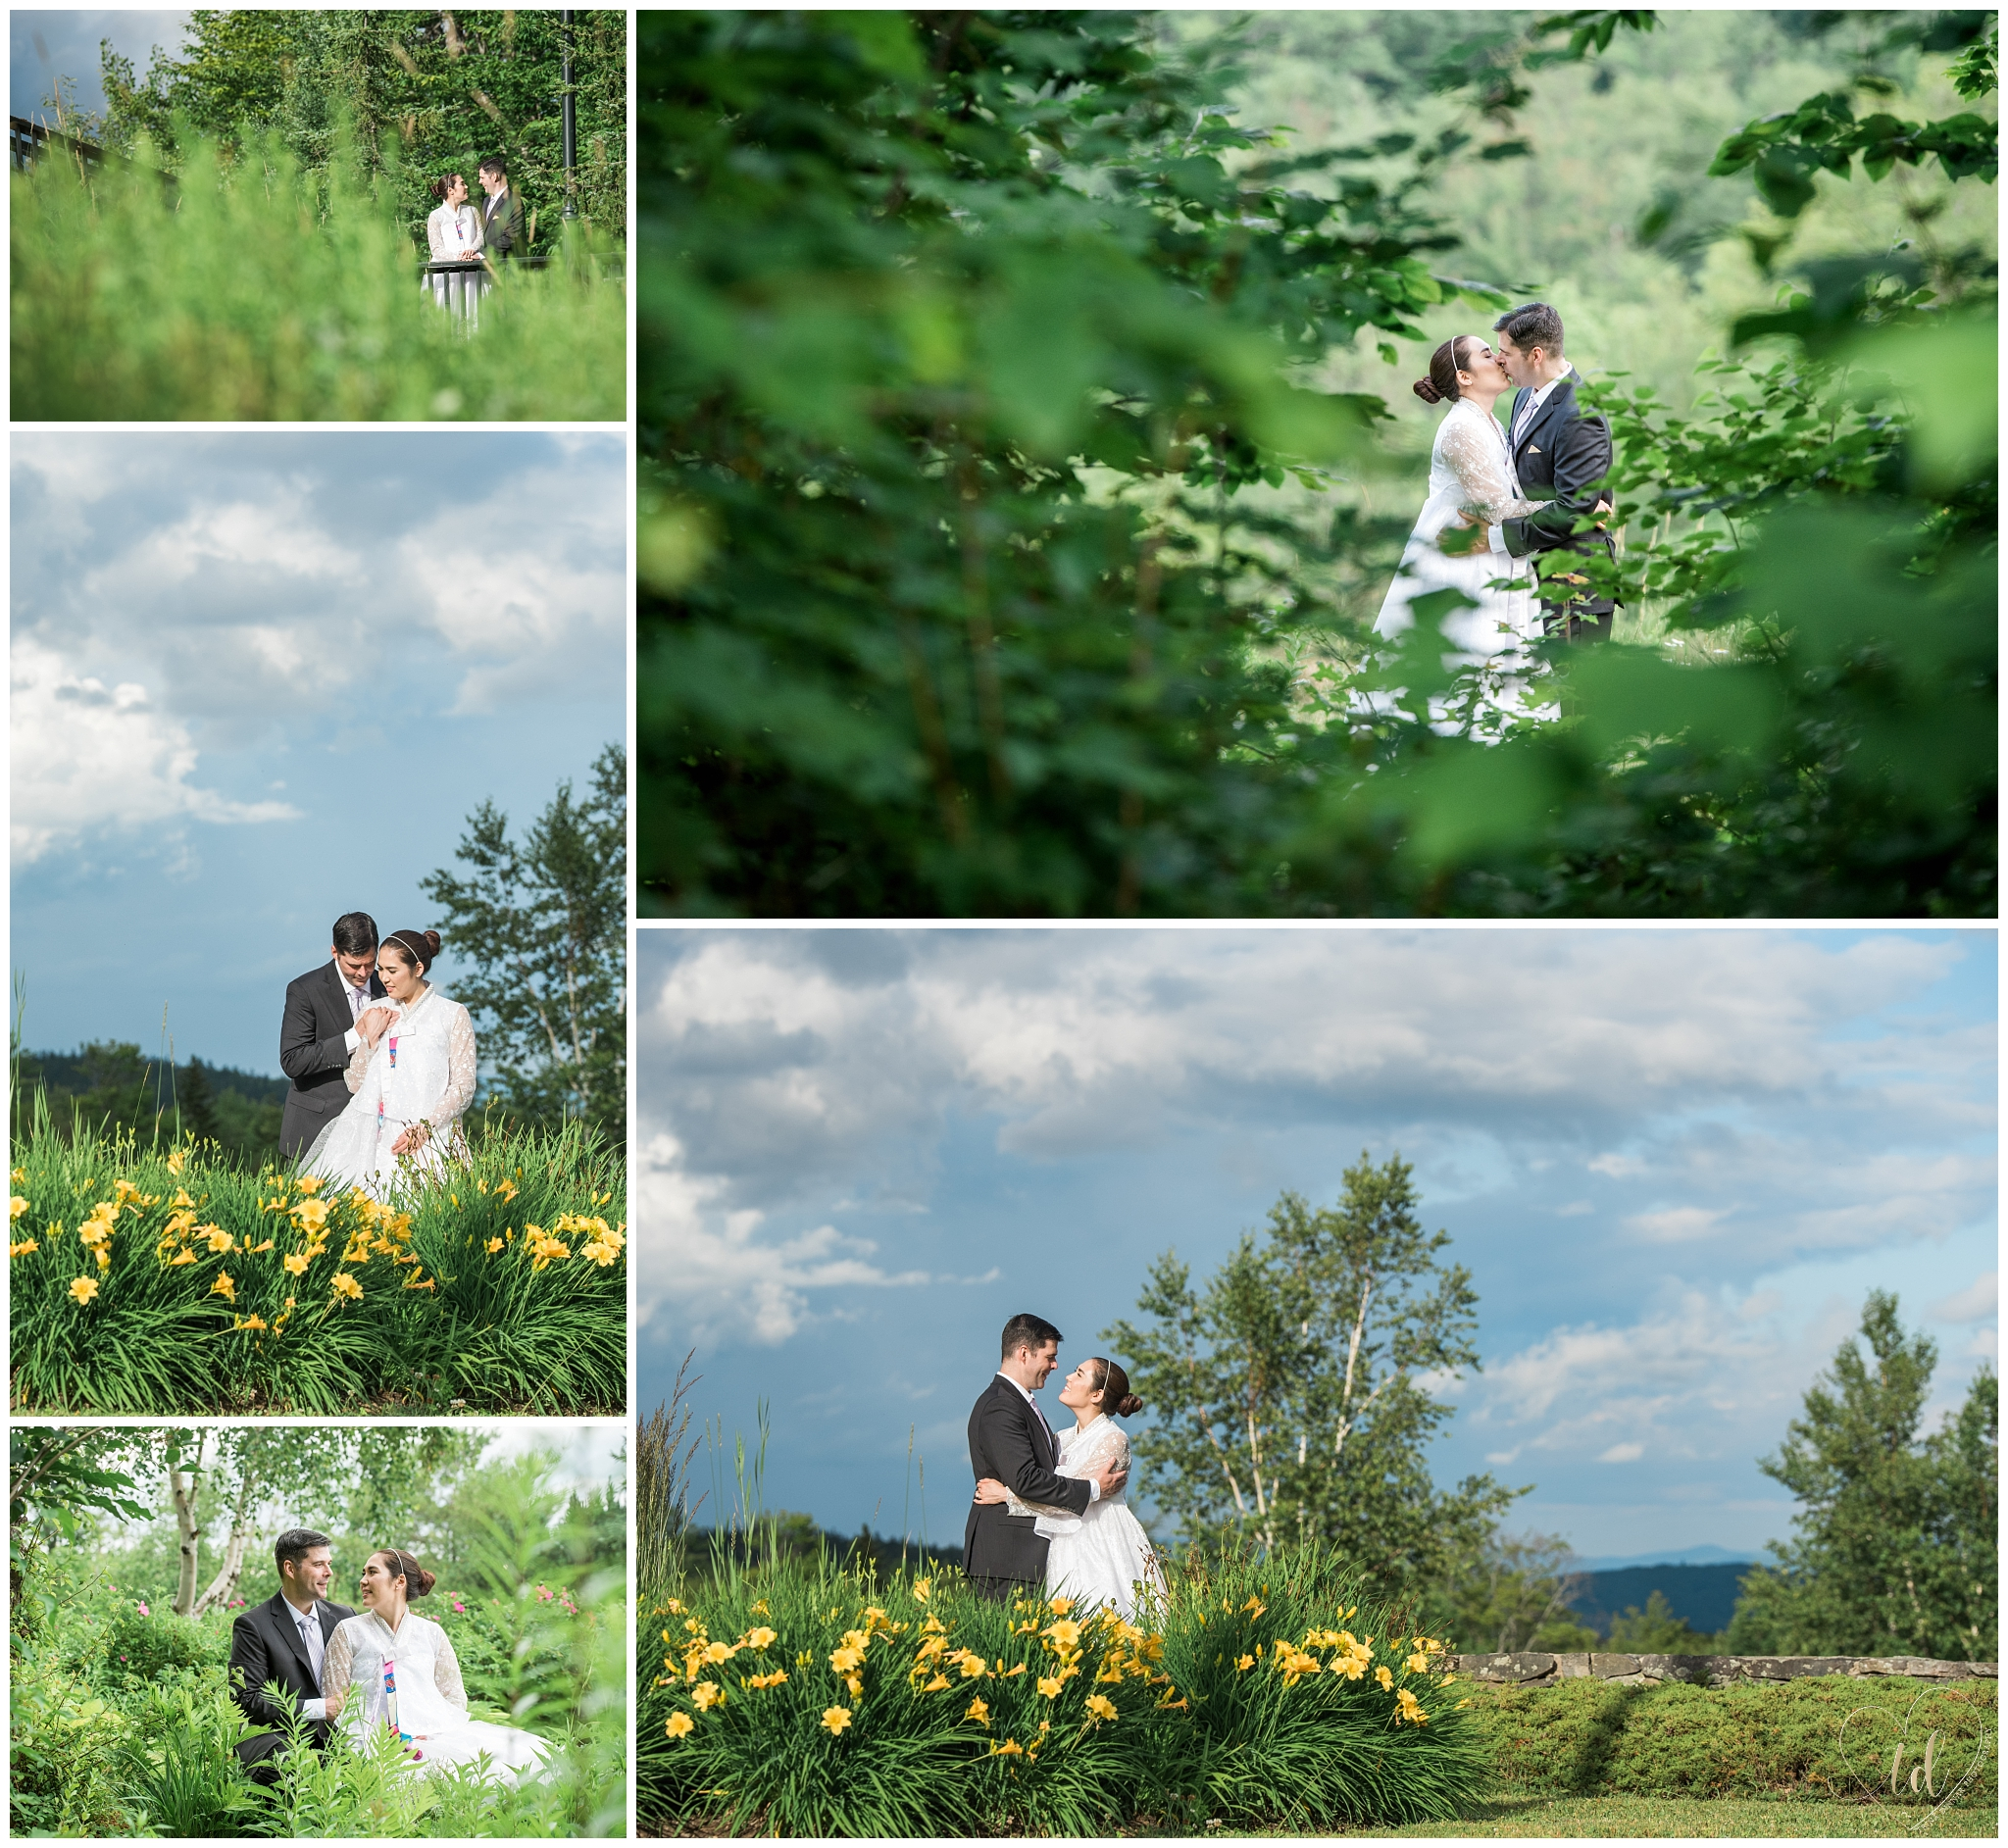 Bride and Groom wedding portraits at Sunday River in Newry, ME